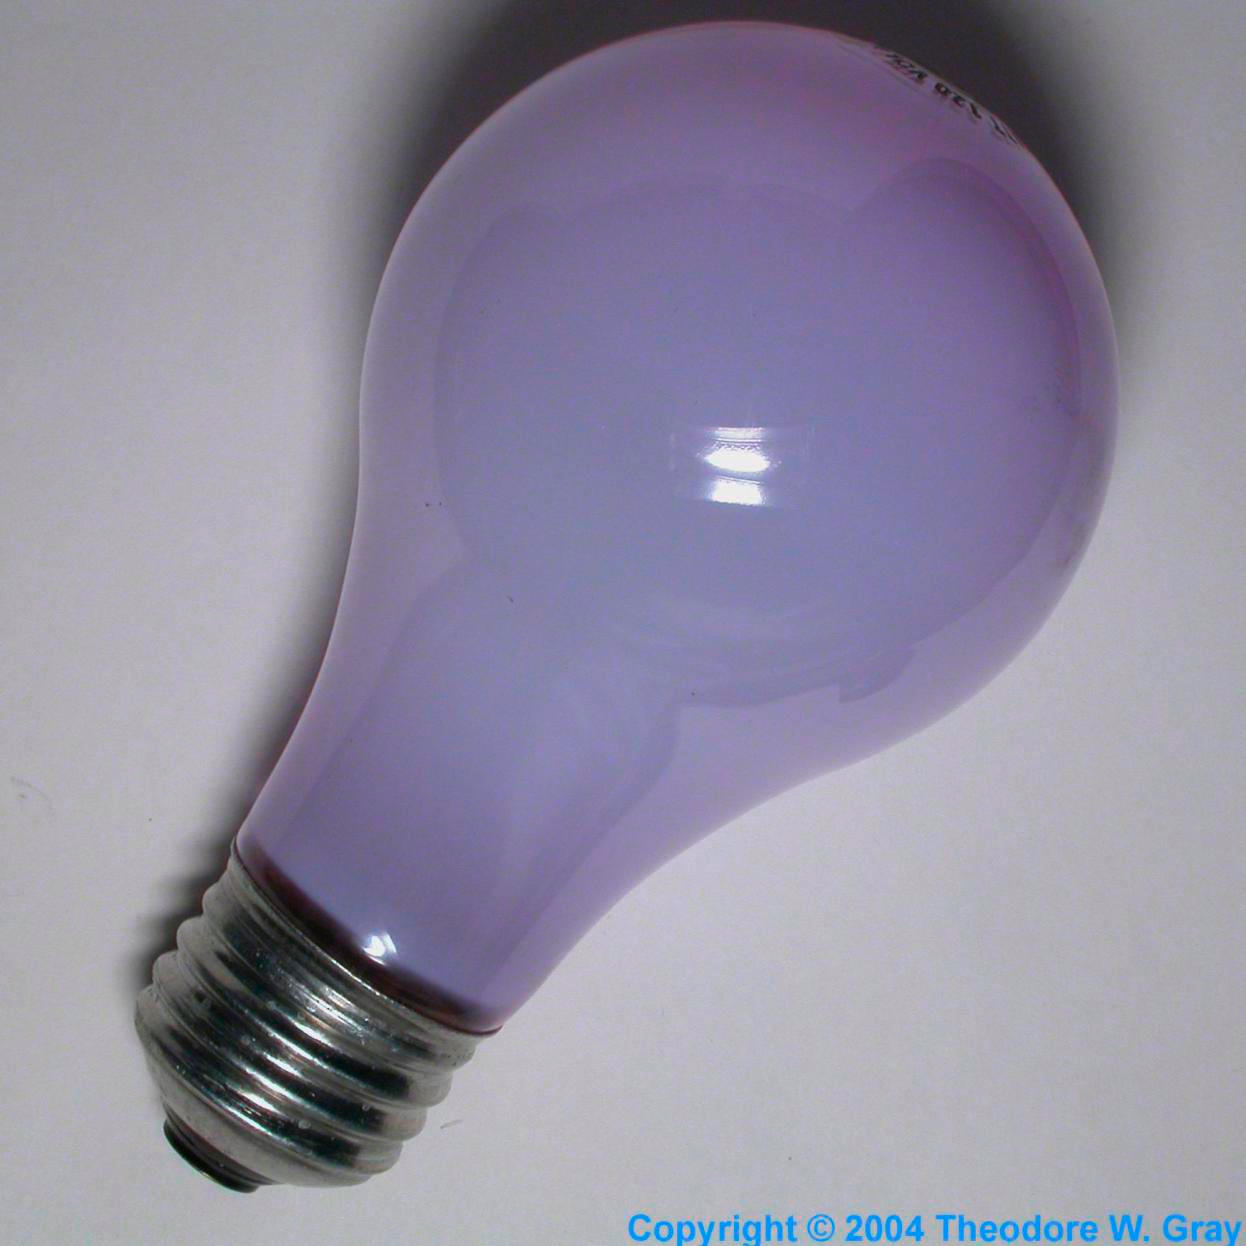 Facts, pictures, stories about the element Neodymium in the ...:Neodymium Daylight incandescent bulb,Lighting